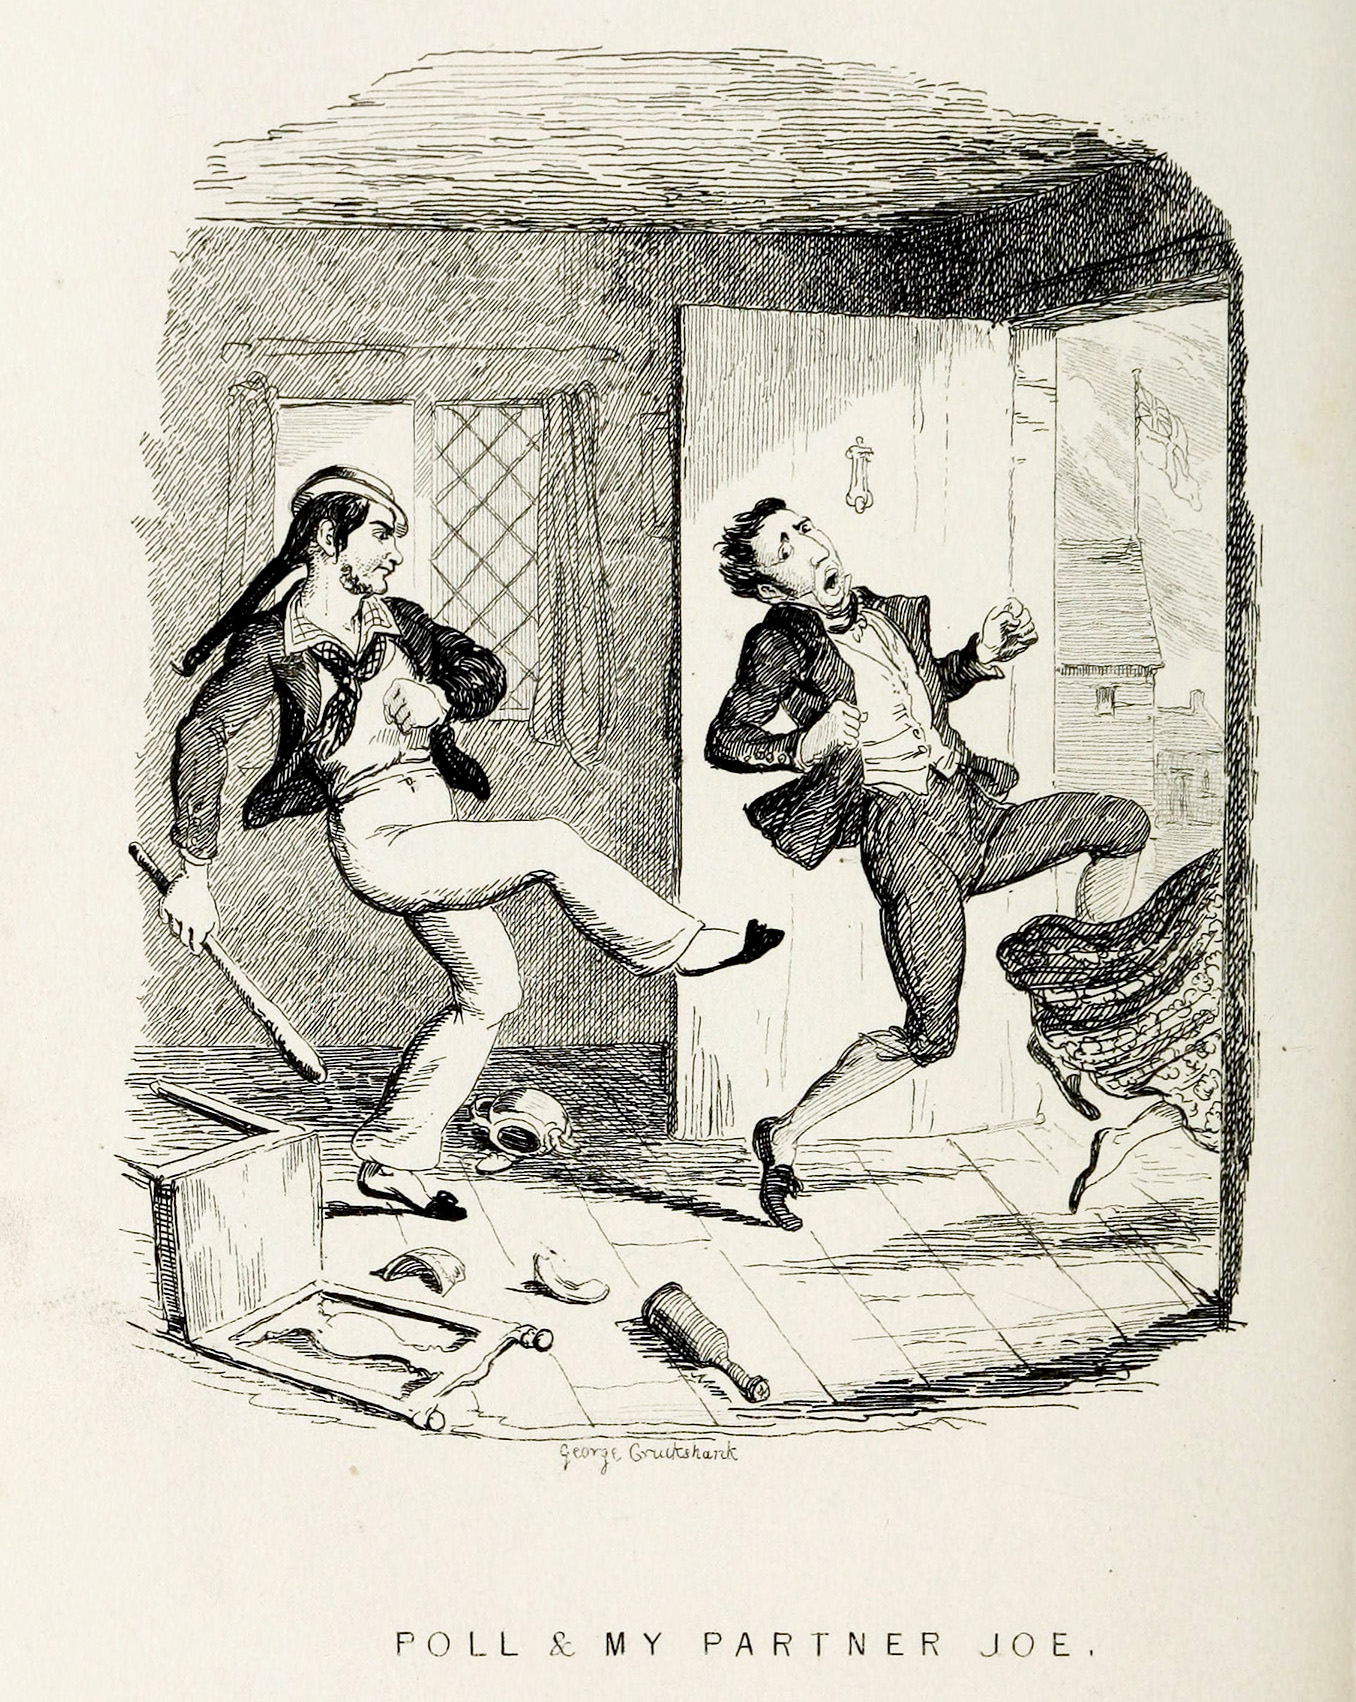 Illustration by G Cruikshank, from Songs of the Late Charles Dibdin, 1841, showing life between decks and the recreational singing of 'fo'c'sle shanties'